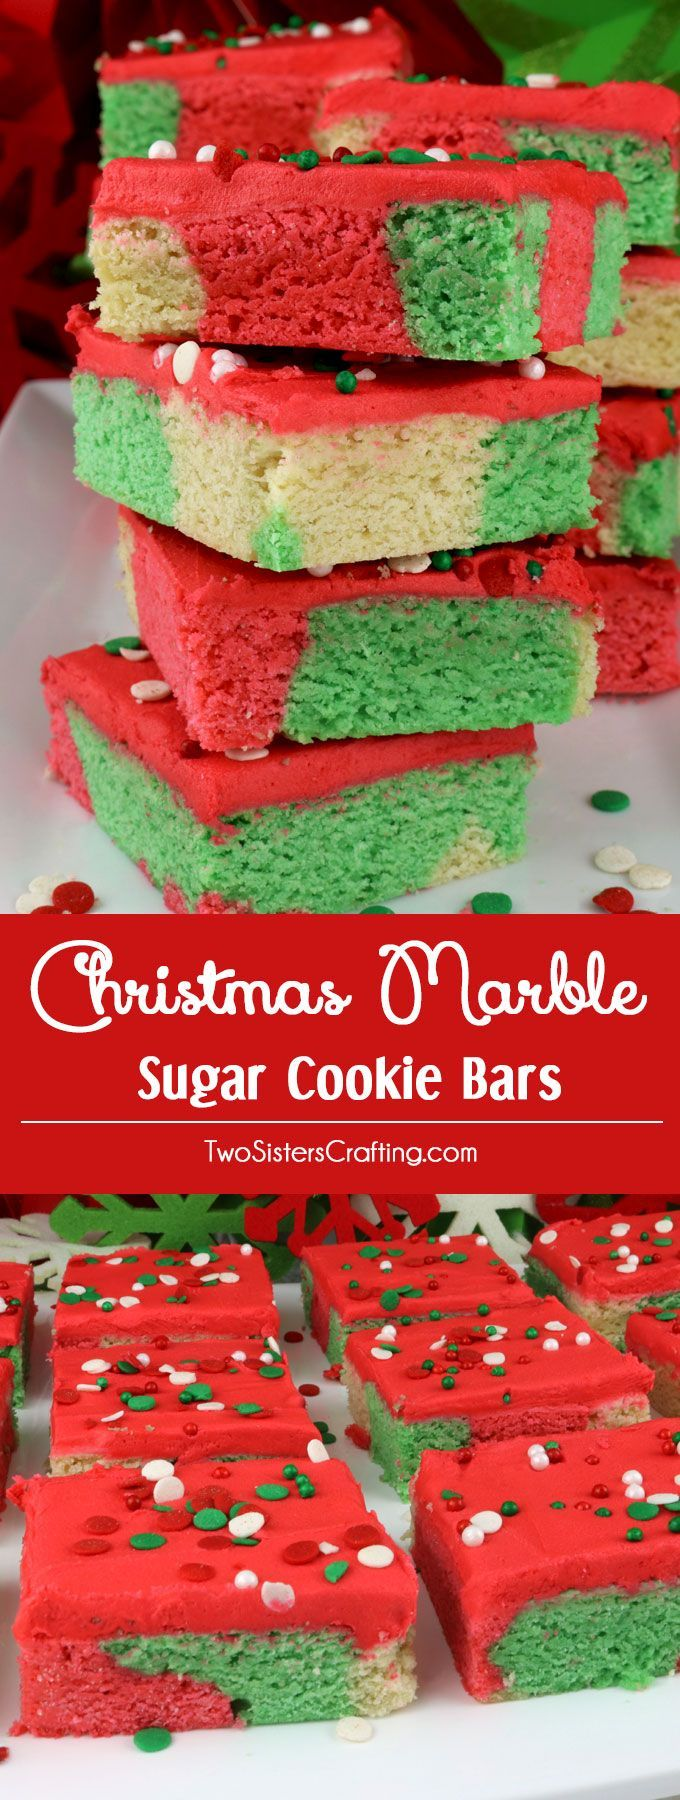 Christmas Marble Sugar Cookie Bars - a unique take on a Frosted Sugar Cookie in gorgeous Christmas colors and topped with yummy red buttercream frosting. A great Christmas Cookie recipe and a delicious Christmas Treat or Holiday Dessert. Make your family a Marble Dessert Bar that they are sure to love! Pin this Christmas Dessert for later and follow us for more more great Christmas Food ideas. #ChristmasCookie #ChristmasDessert